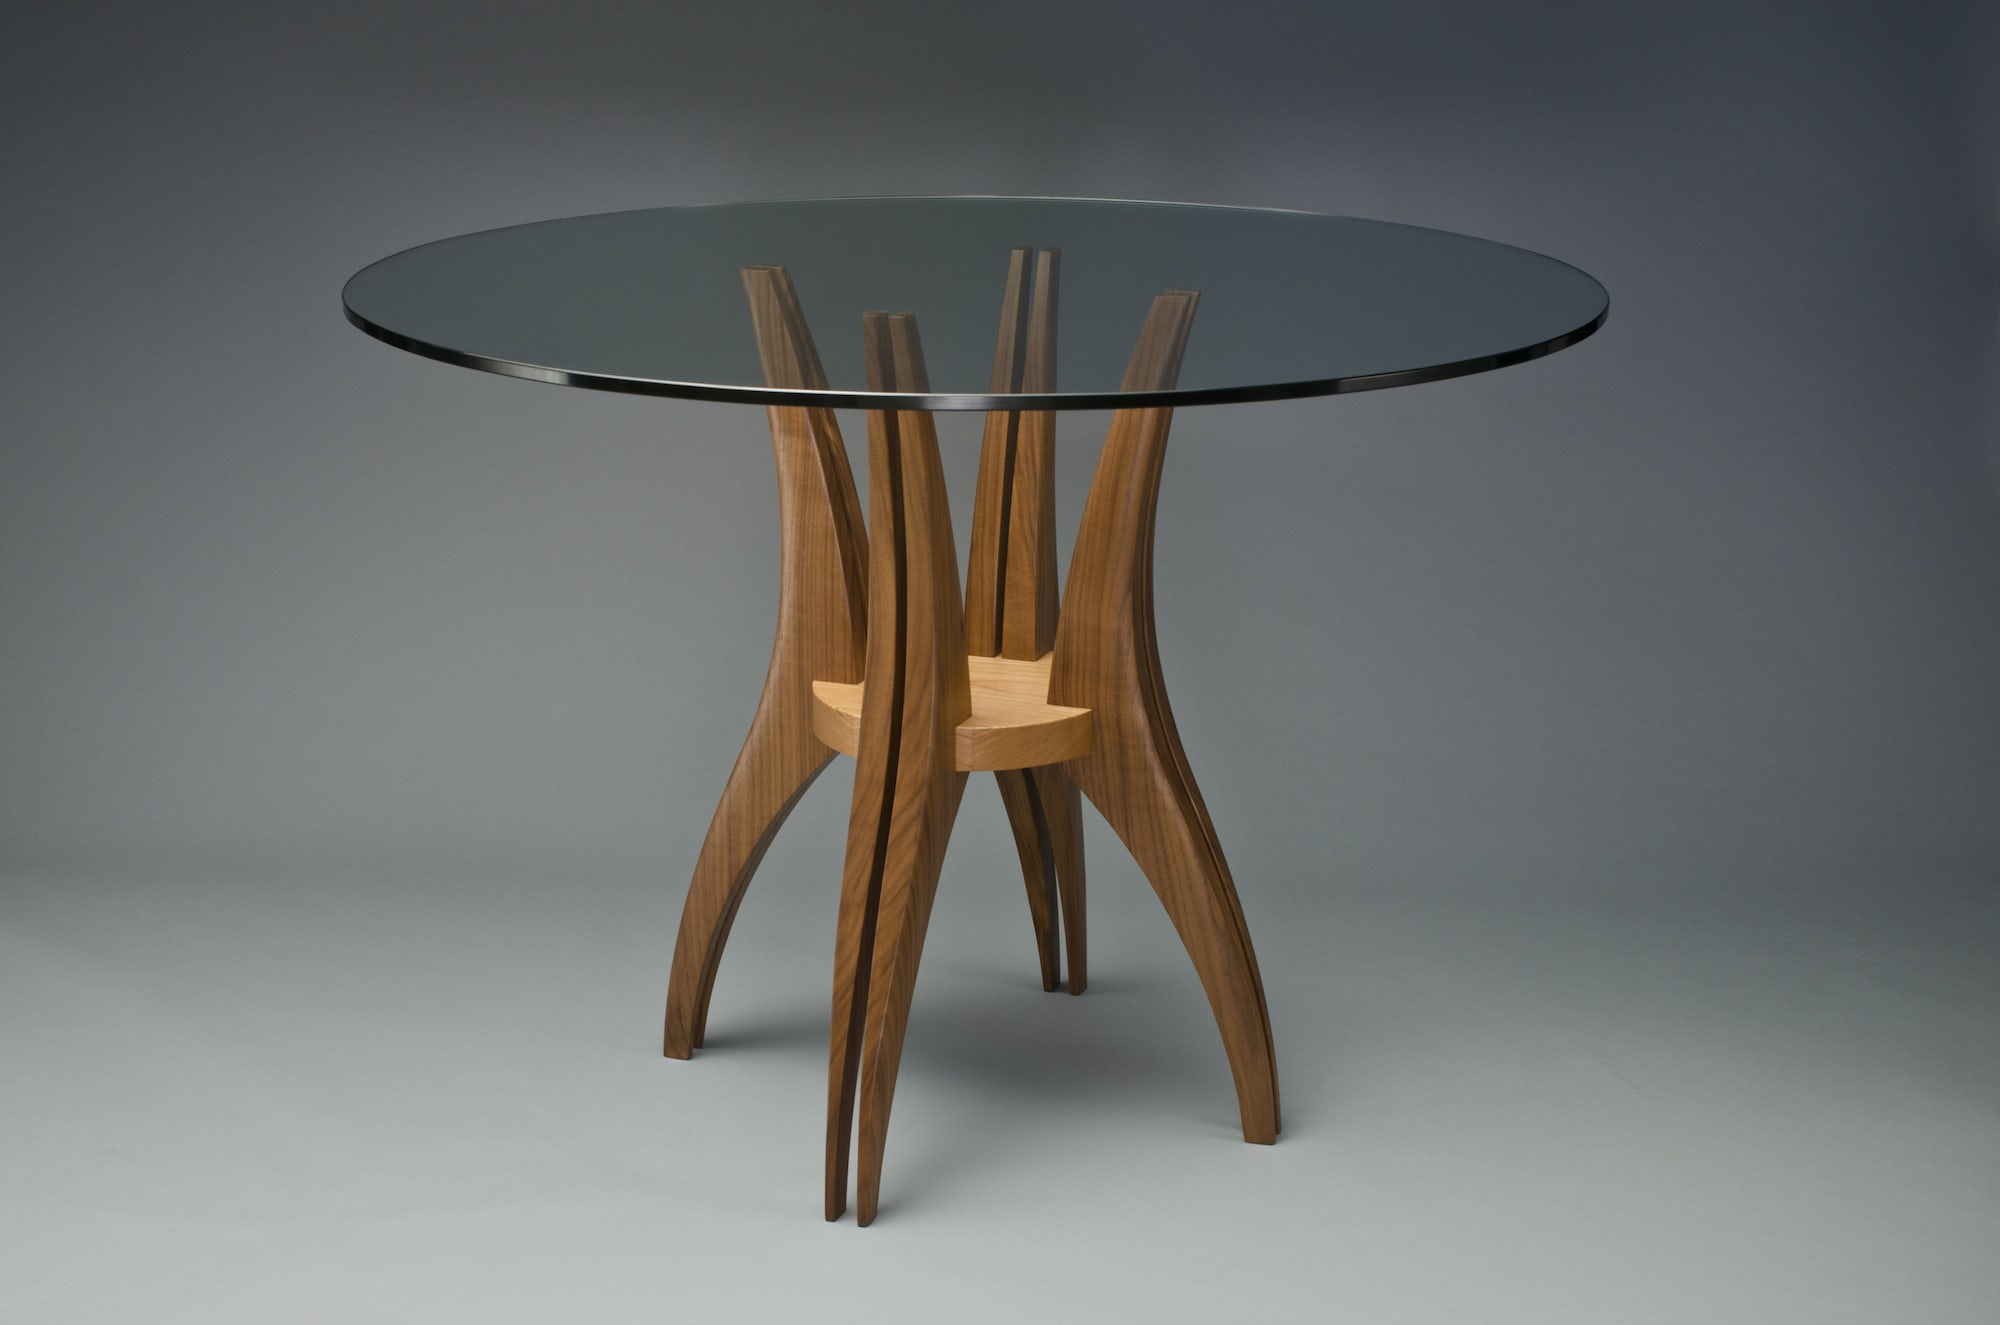 Gazelle-cafe-table